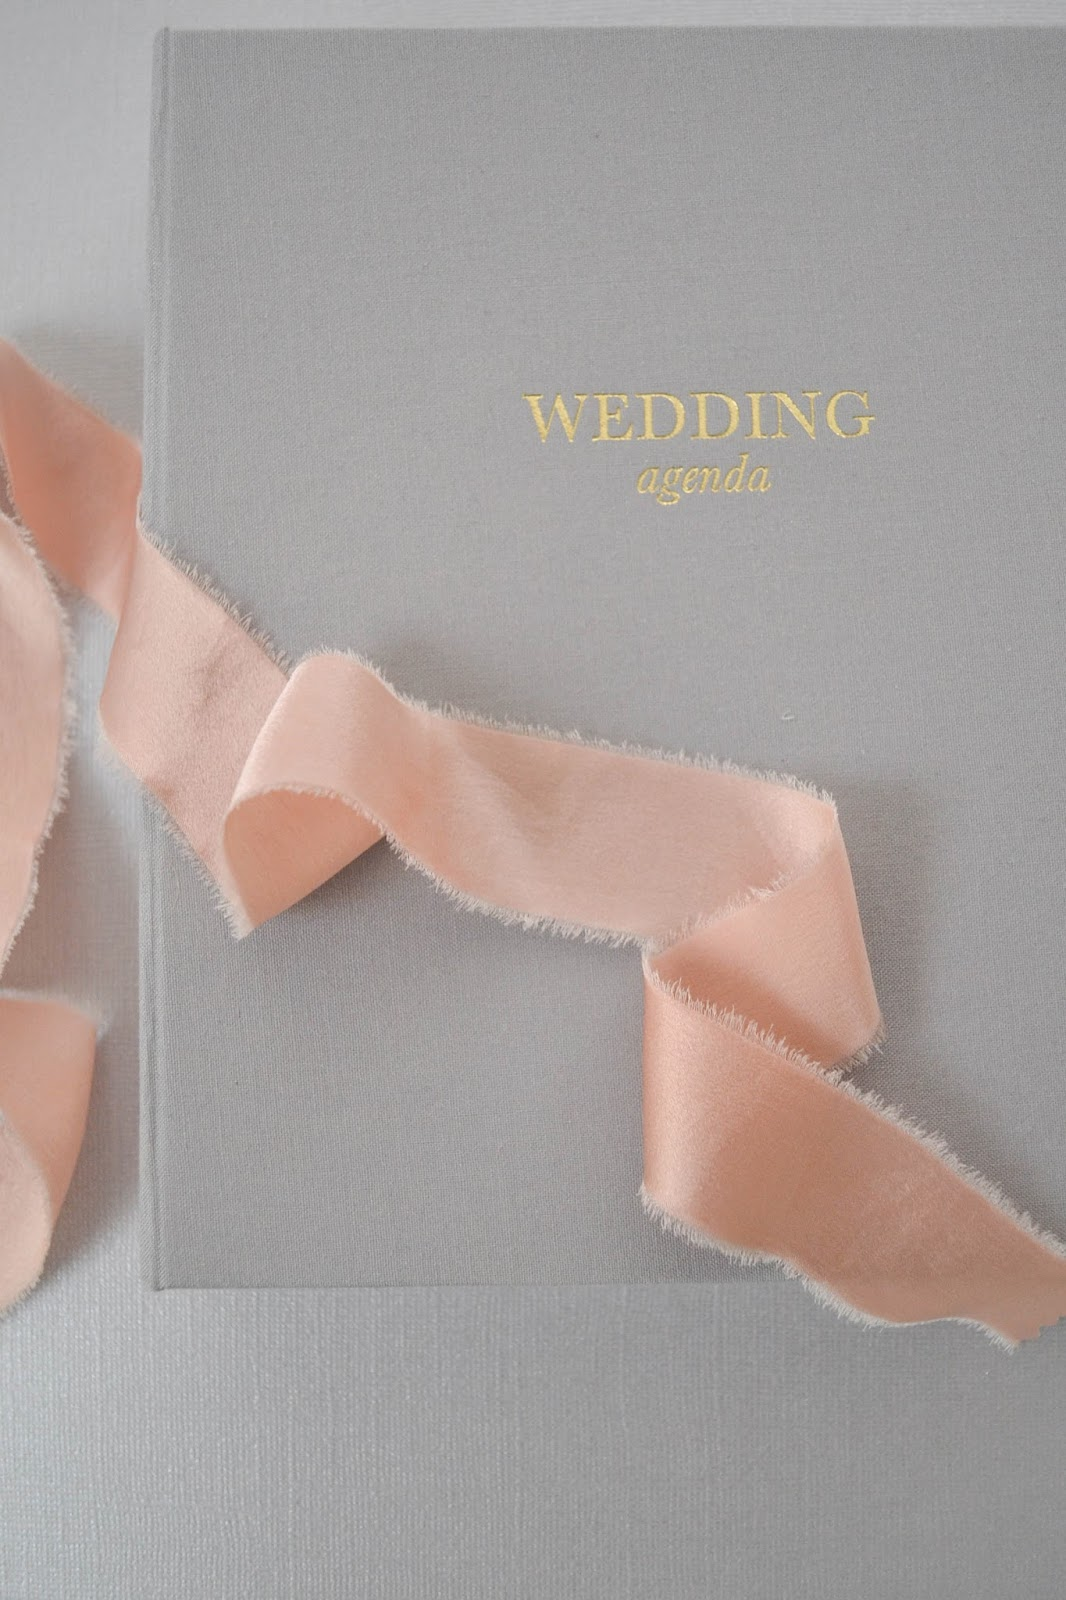 wedding agenda sugar paper